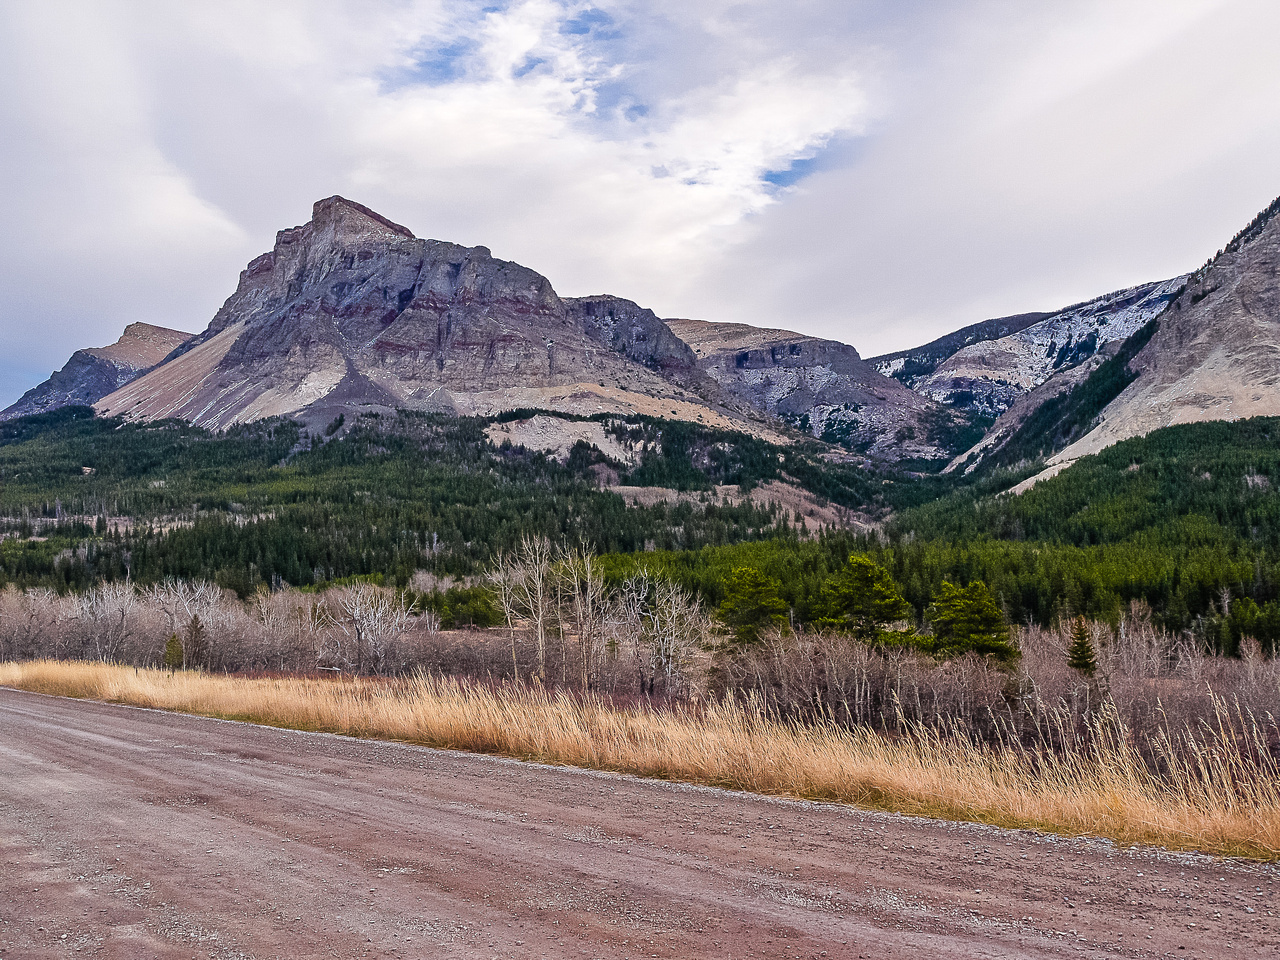 Table Mountain from the Beaver Mines road.